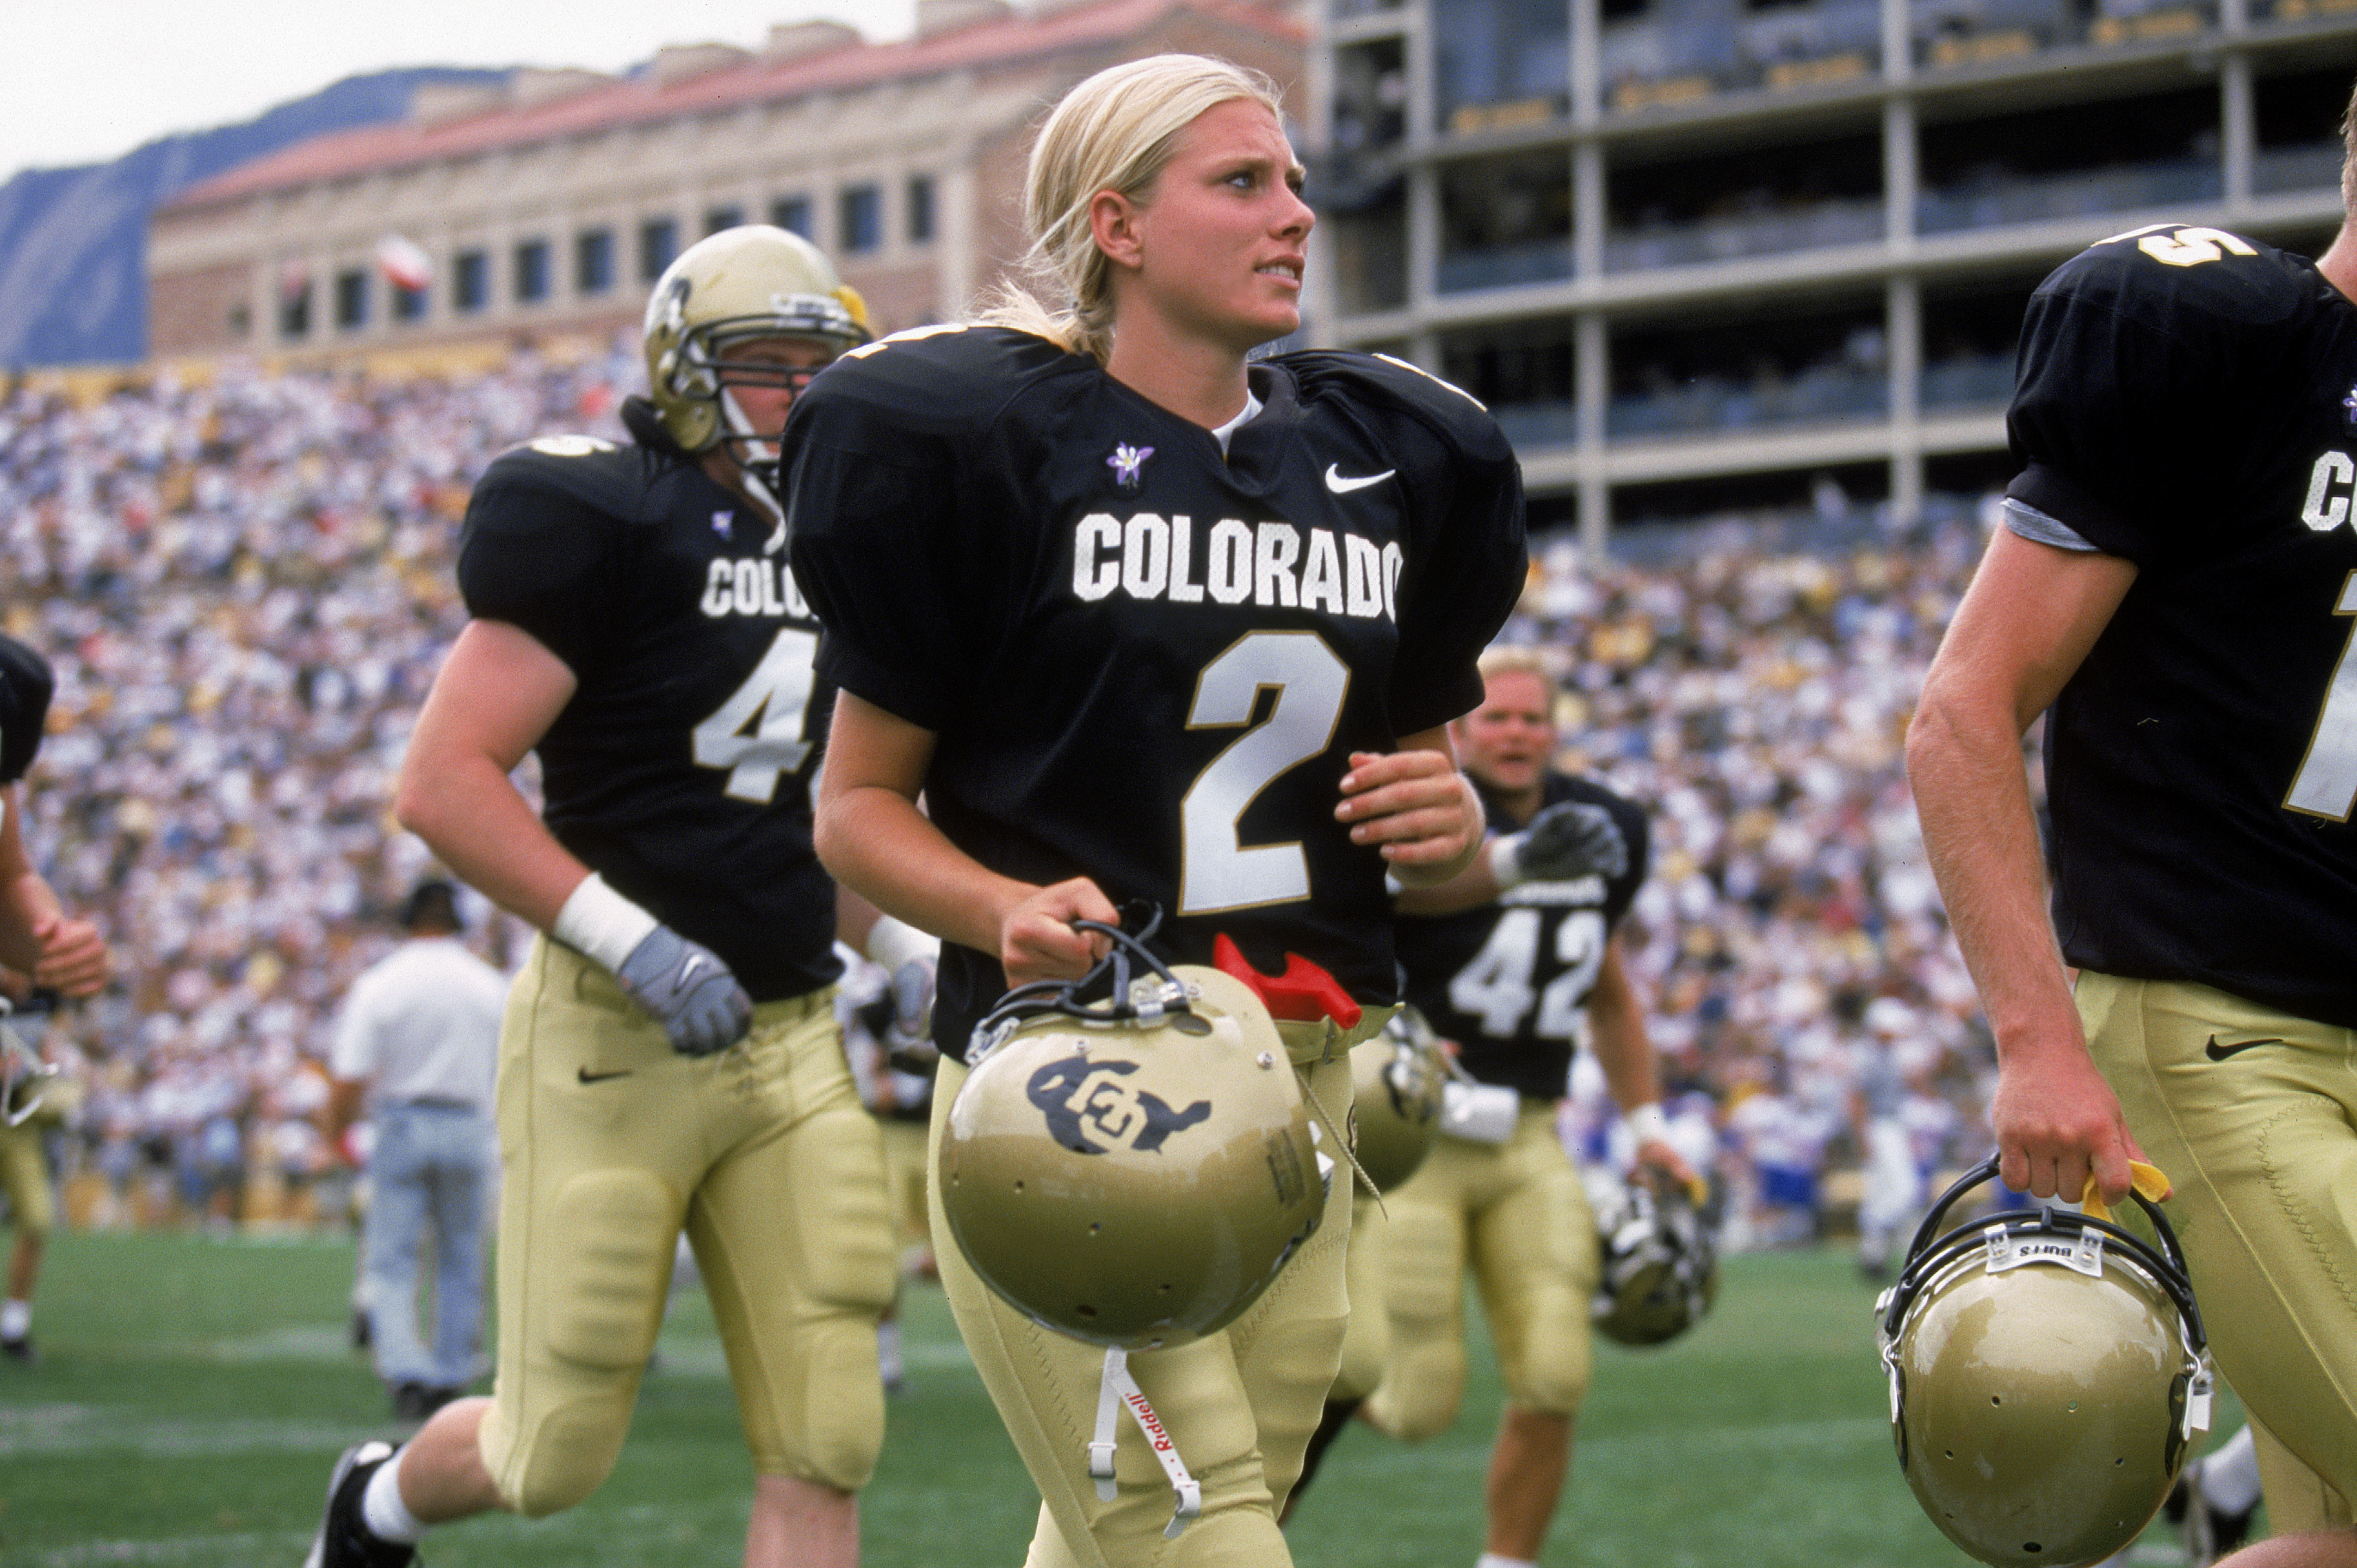 BOULDER, CO - SEPTEMBER 18:  Katie Hnida of the University of Colorado heads off the field during the game against the University of Kansas at Folsom Field on September 18, 1999 in Boulder, Colorado. The University of Colorado won 51-17. (Photo by  Brian